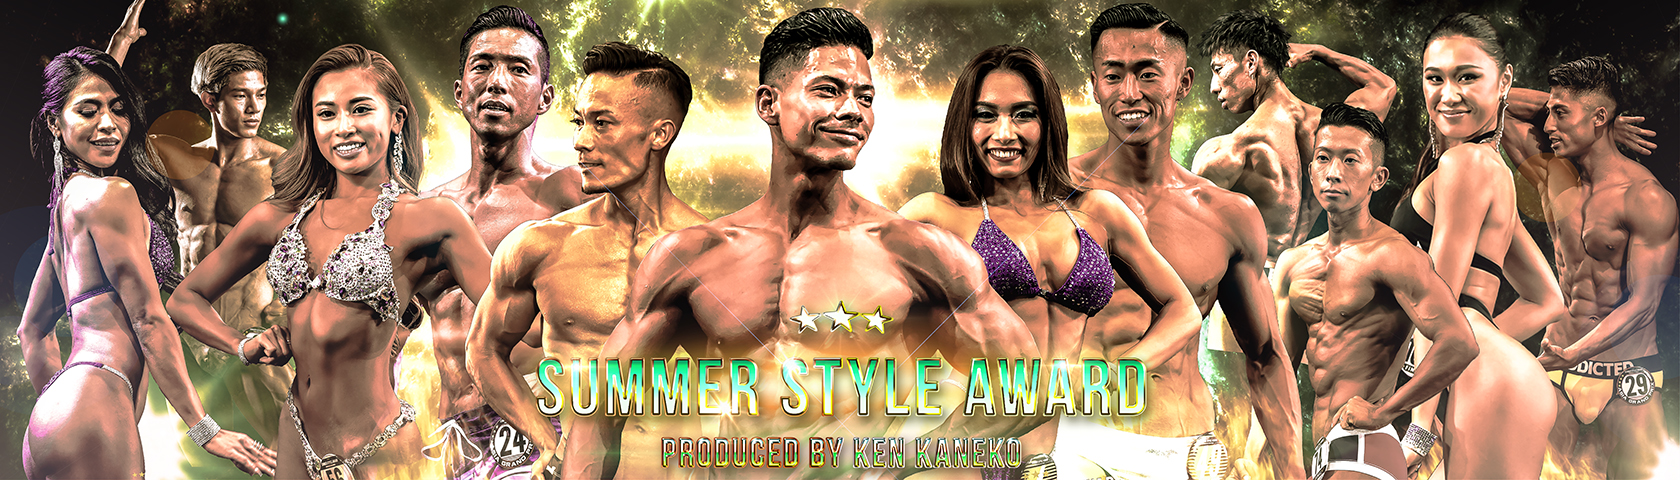 SUMMER STYLE AWARD Produced by KEN KANEKO